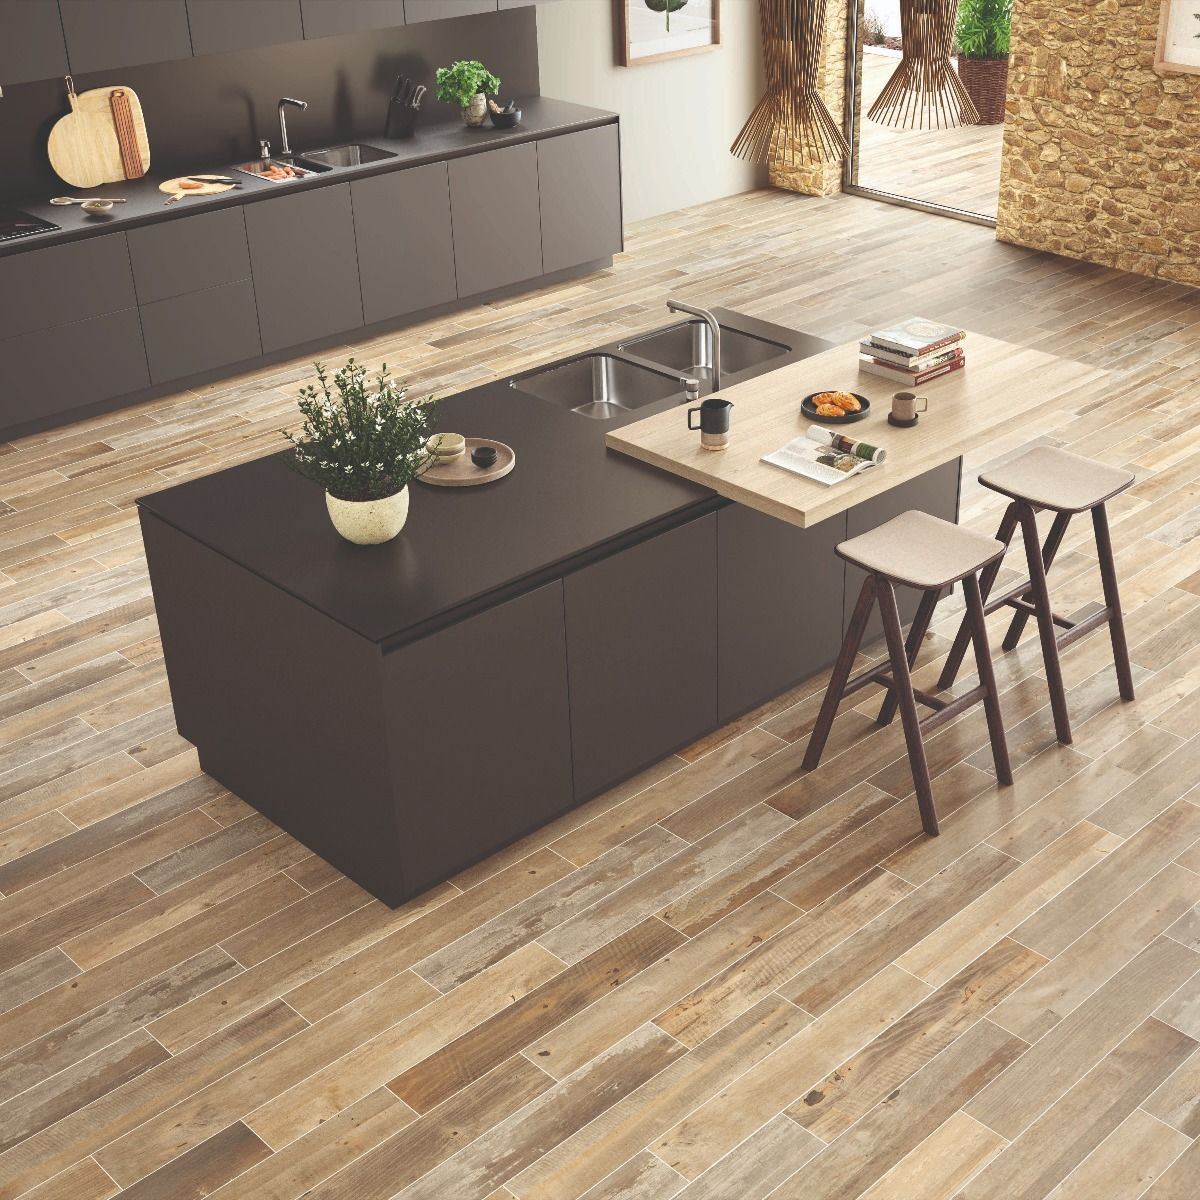 New wood effect tiles at Latino Ceramics in Guiseley